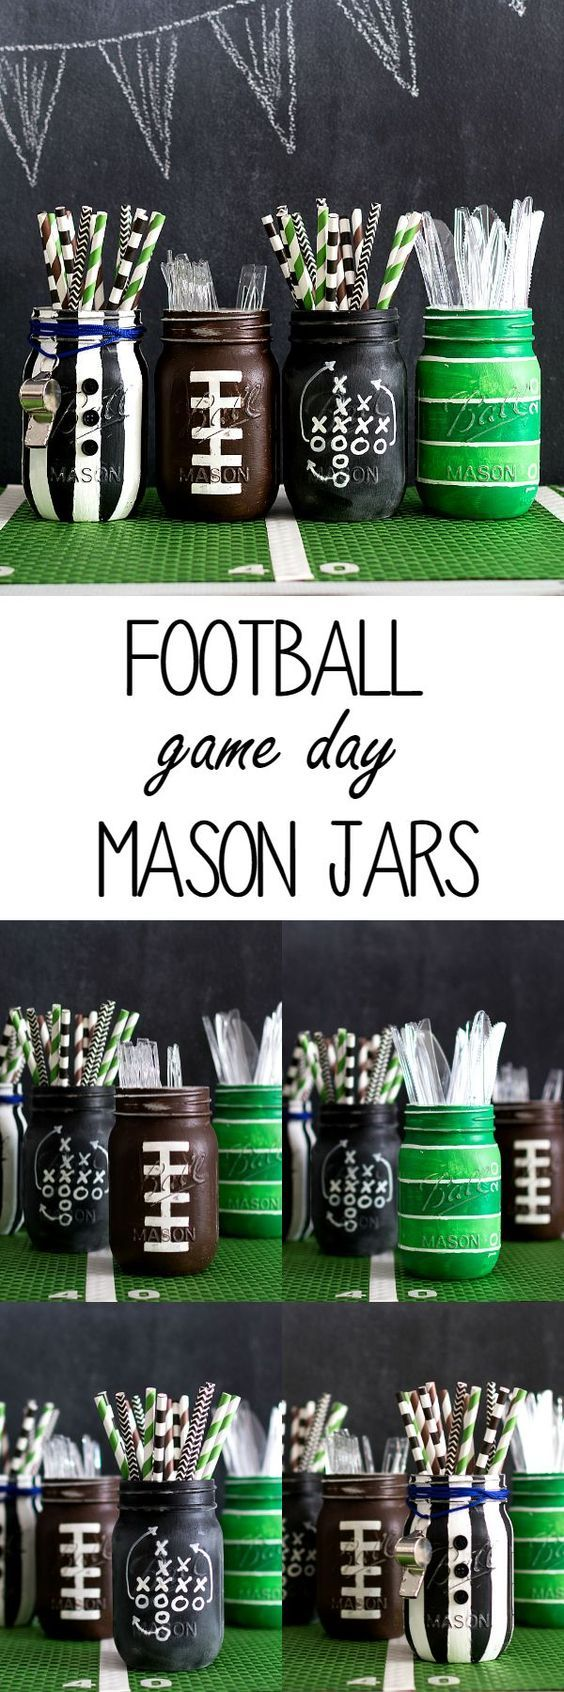 Football Party Mason Jars. Super Bowl party idea using football party mason jars painted as footballs, referees, football field with grid lines and football game plan…